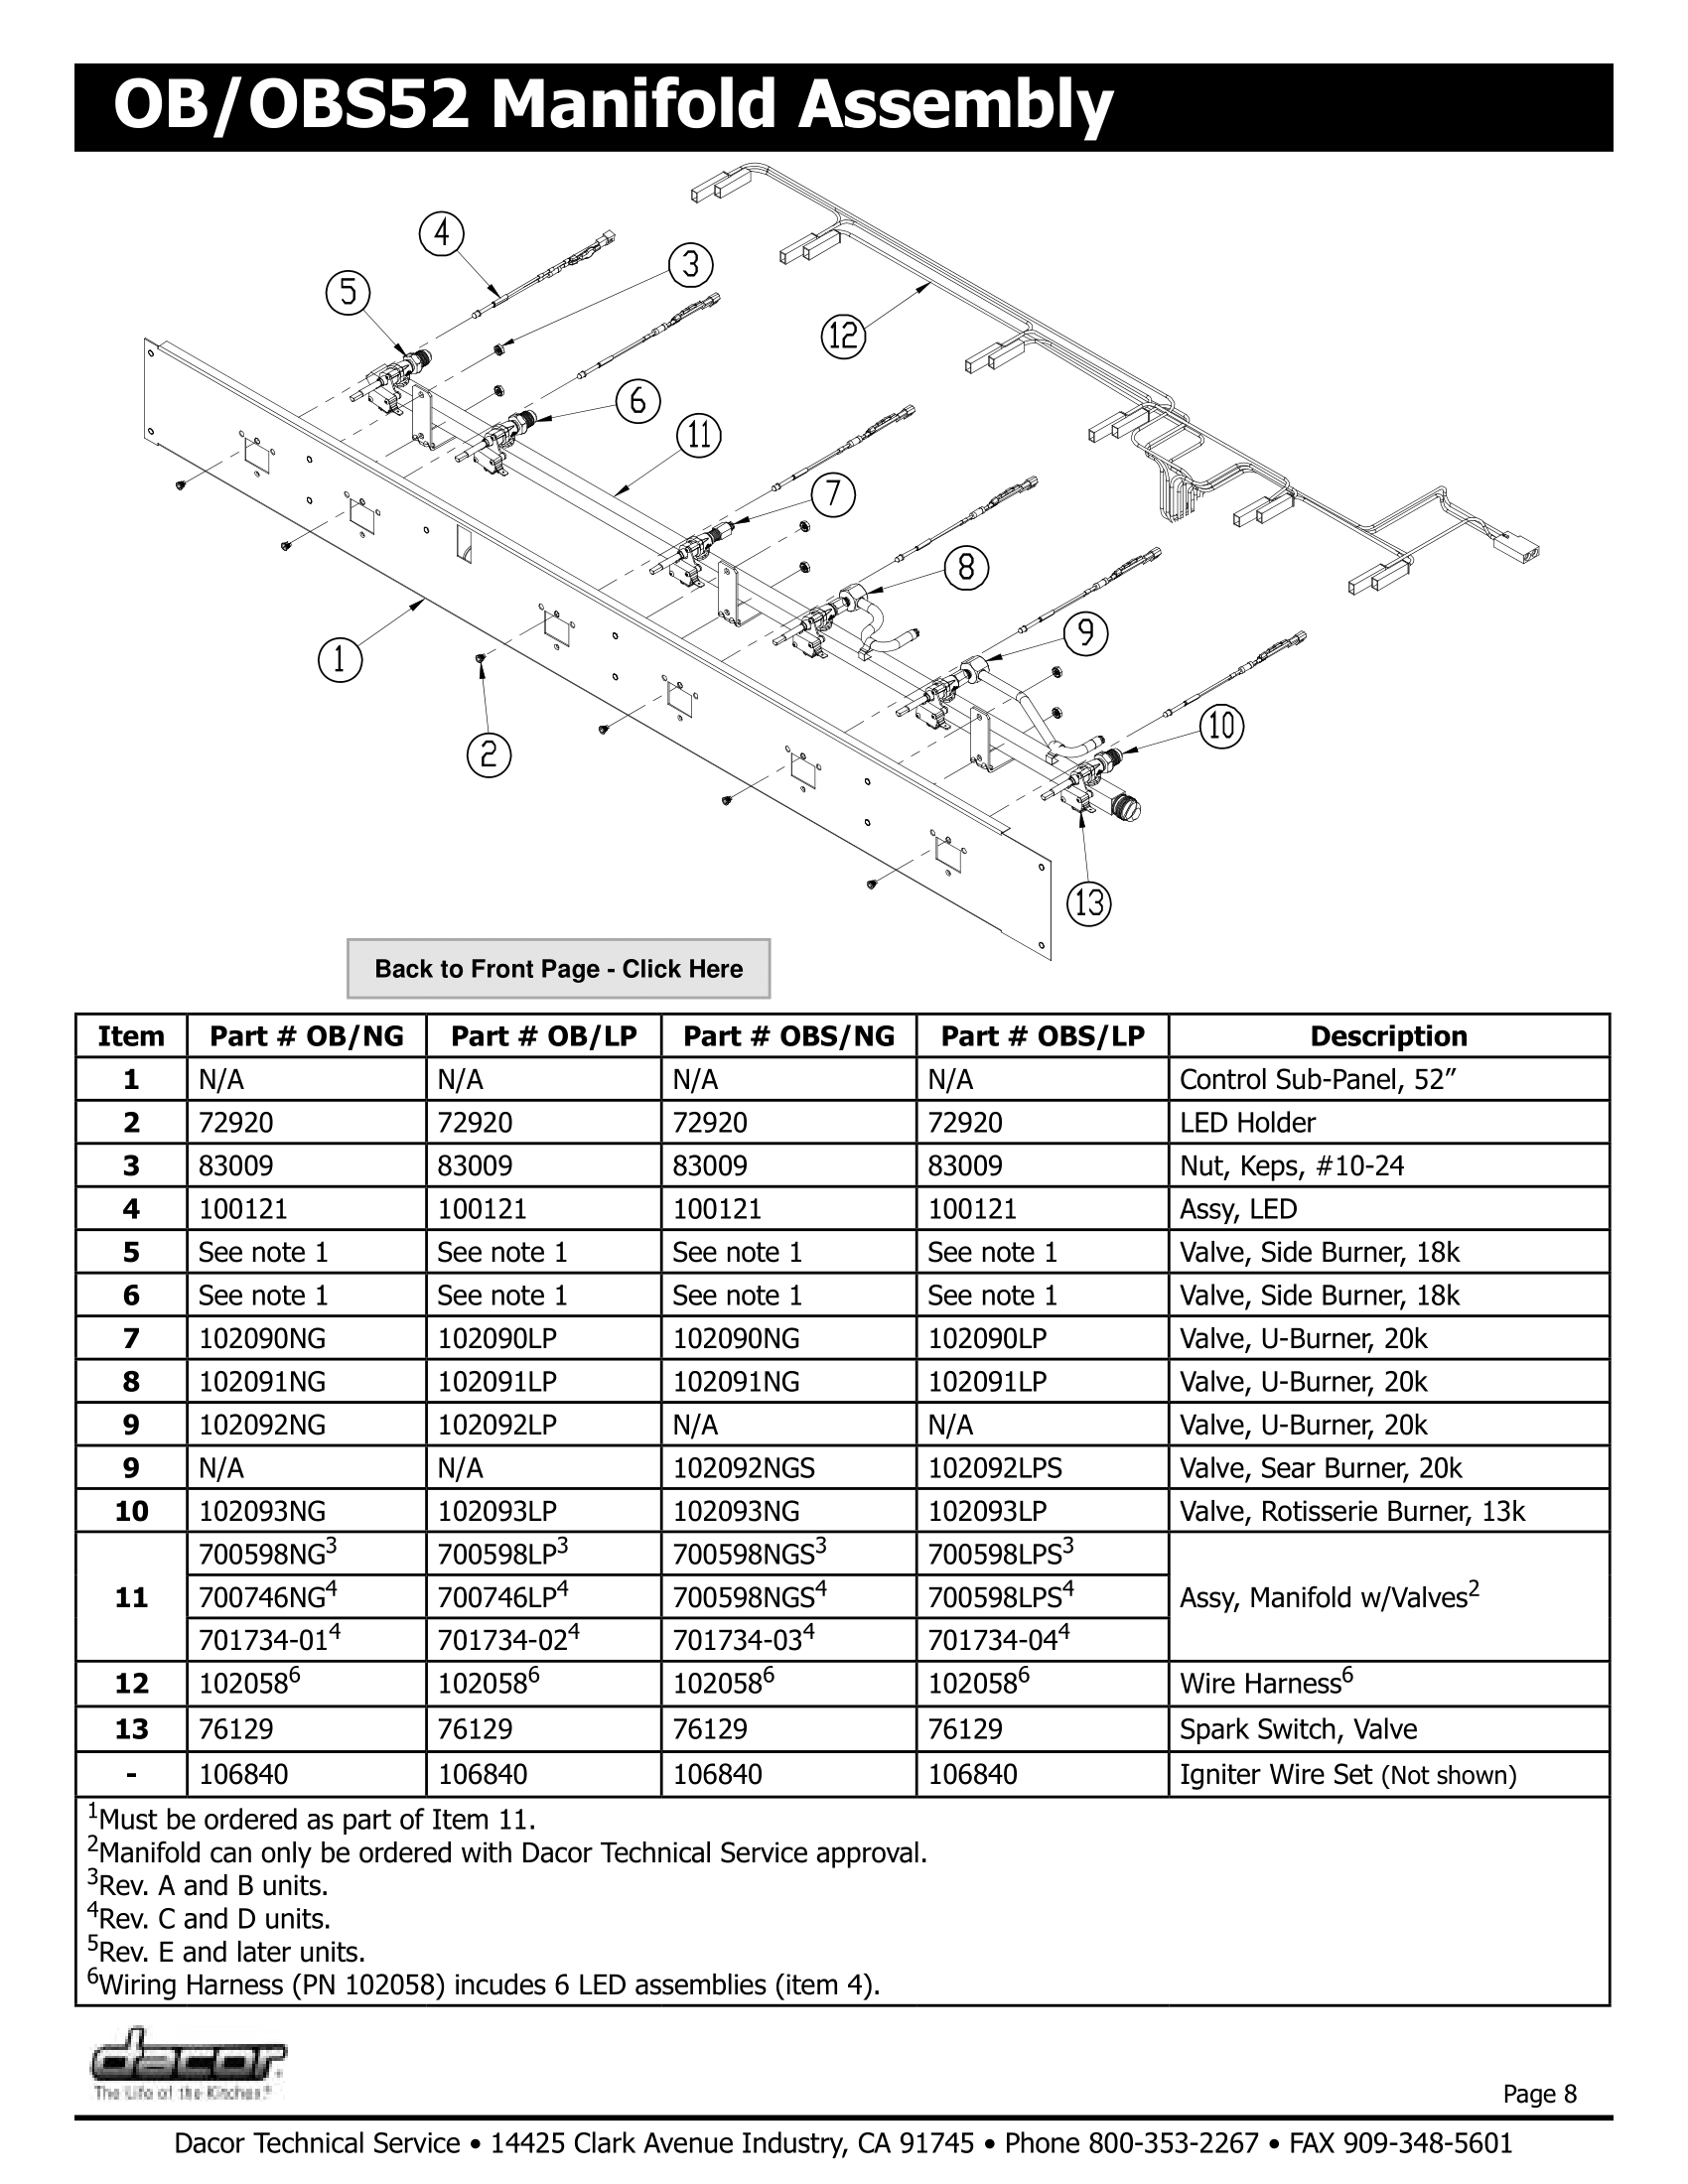 Dacor OB52 Manifold Assembly Schematic